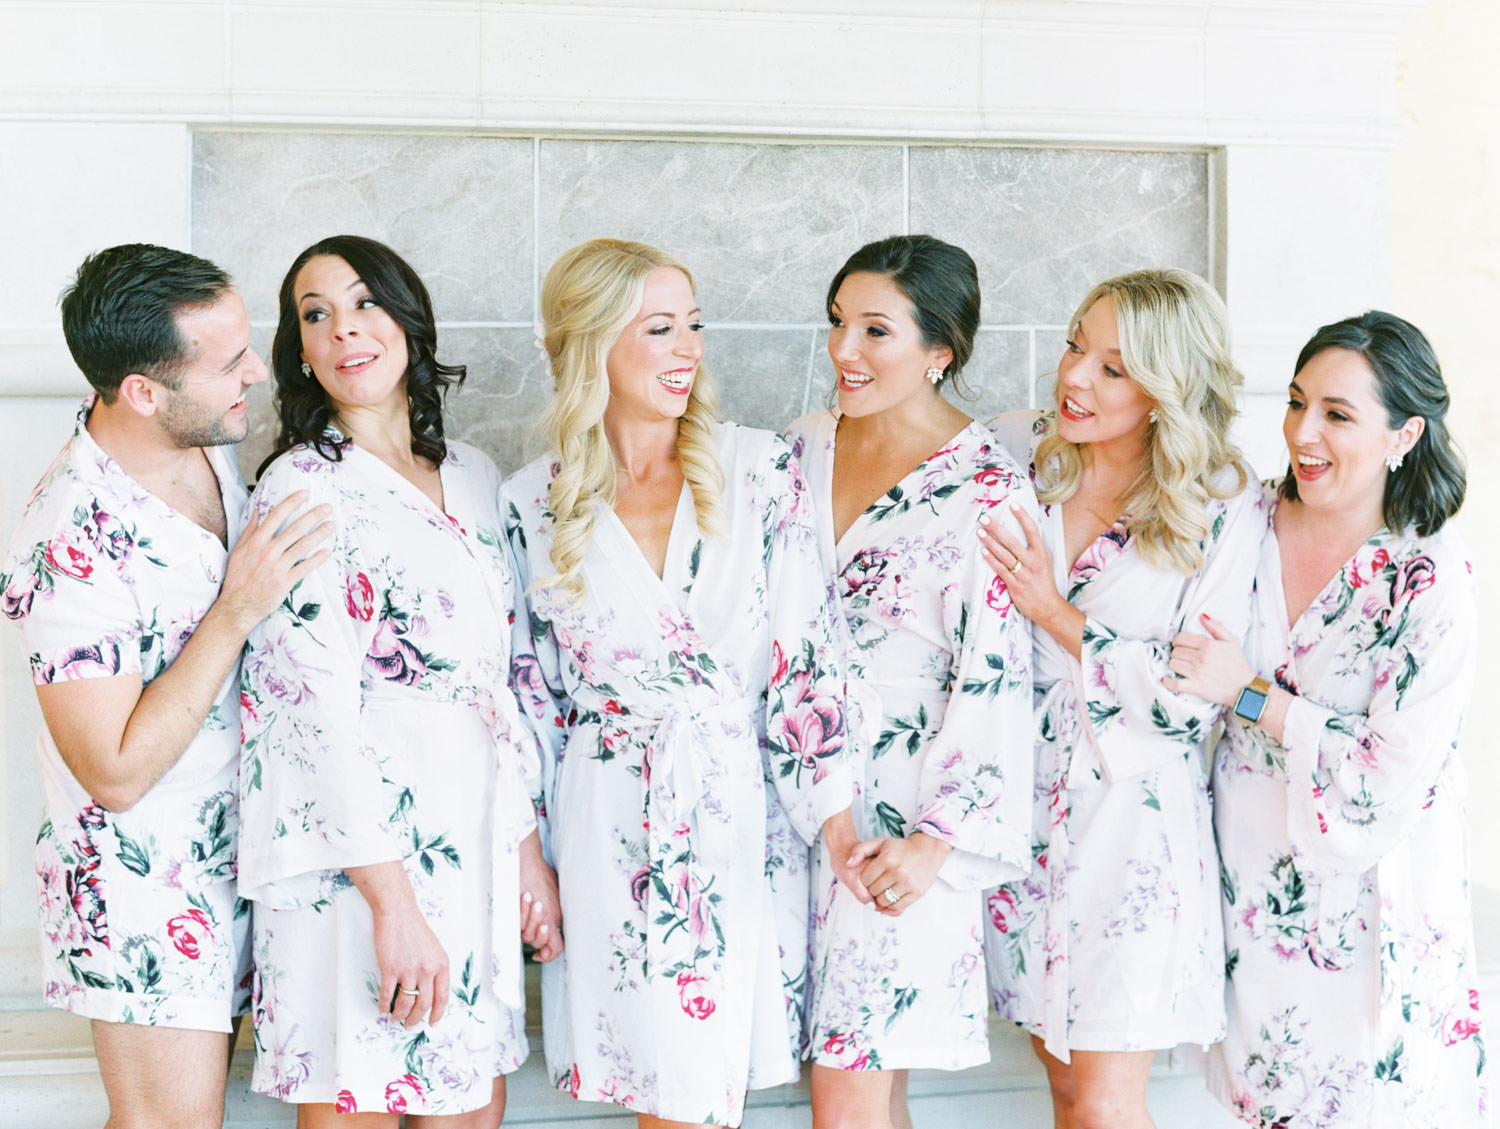 Bridesman in floral pjs to match bride and bridesmaids in floral robes. Miramonte Resort wedding. Film photography by Cavin Elizabeth.